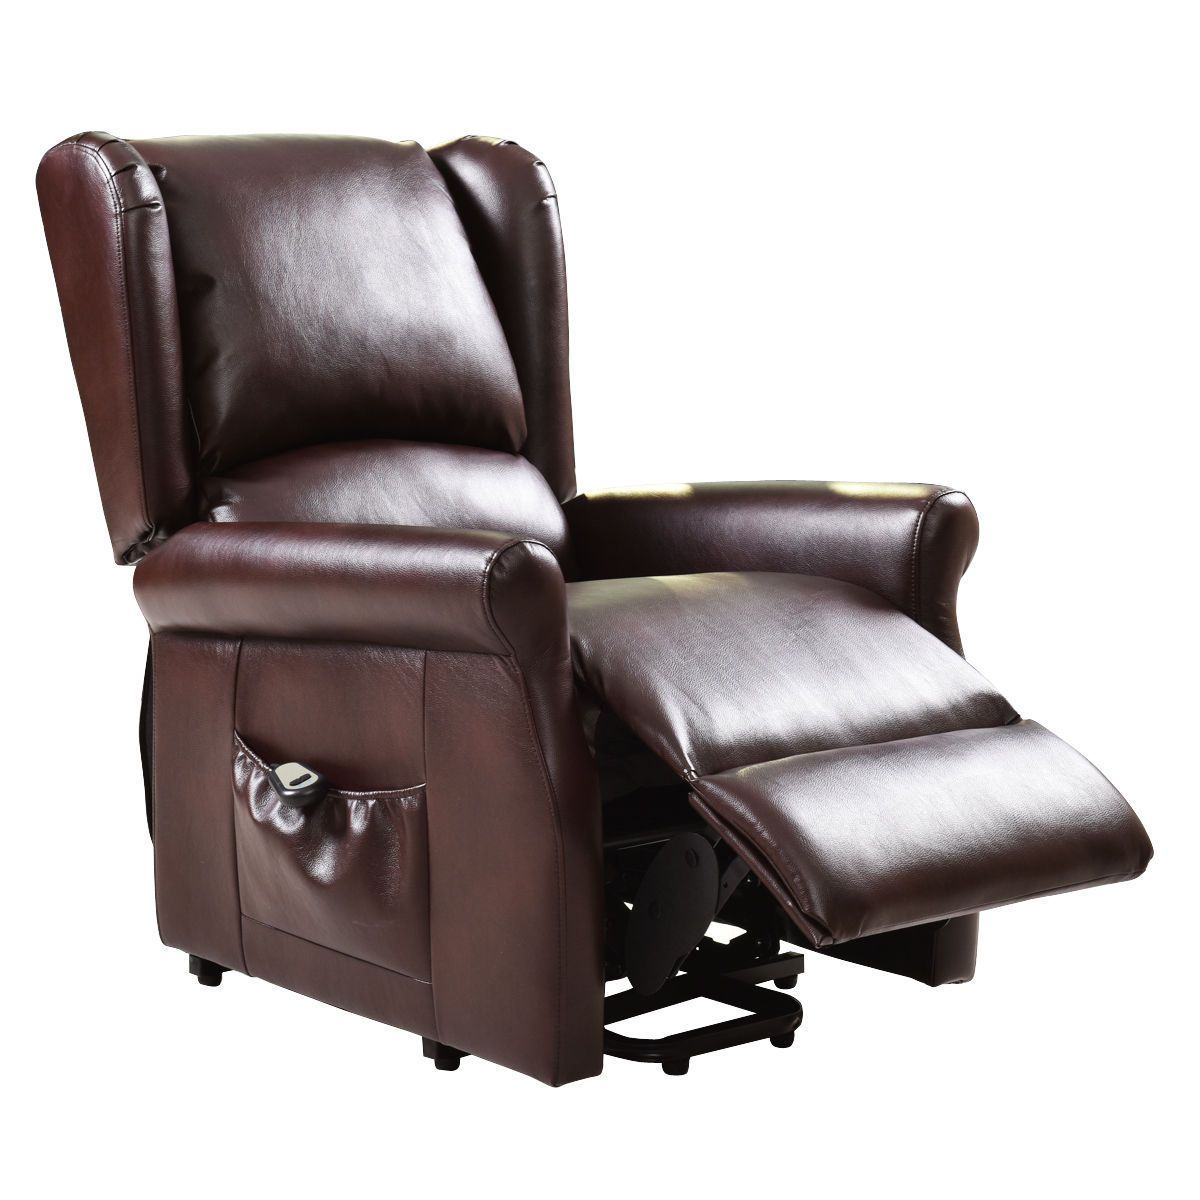 Electric Lift Chair Lift chair recliners, Lift chairs